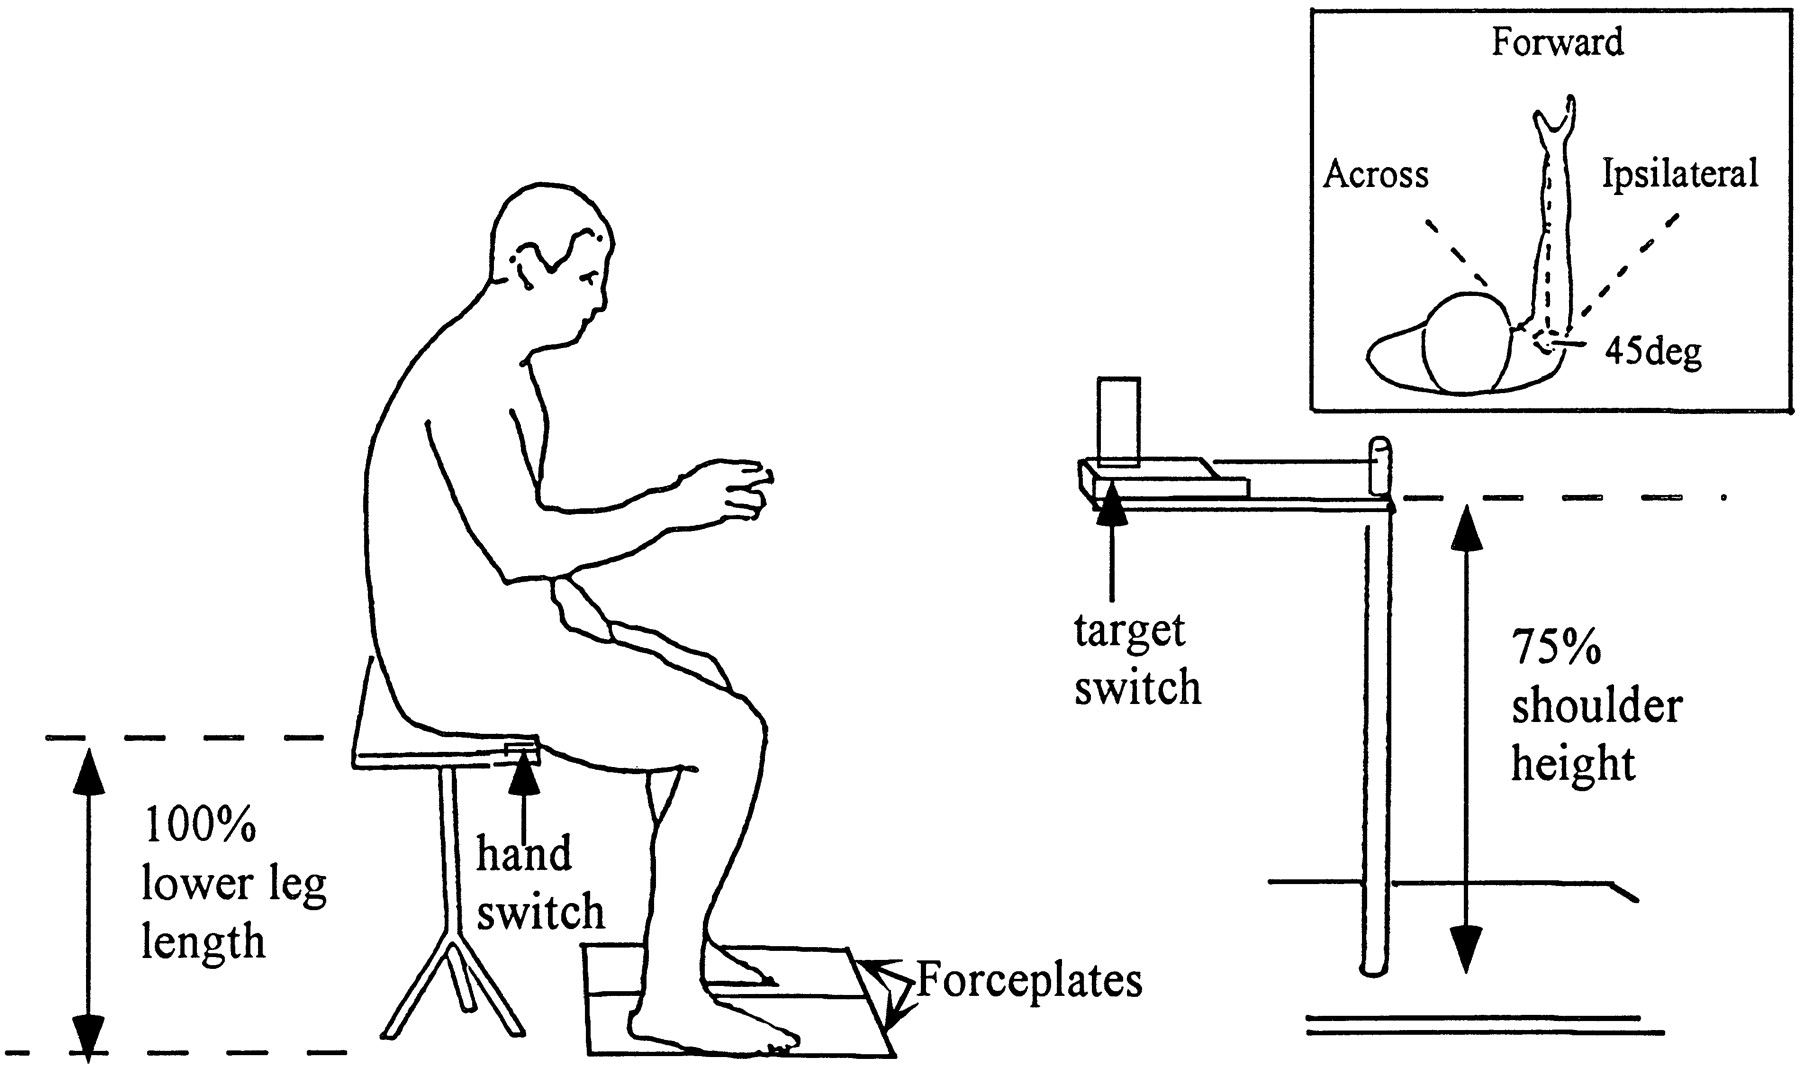 Task-Related Training Improves Performance of Seated